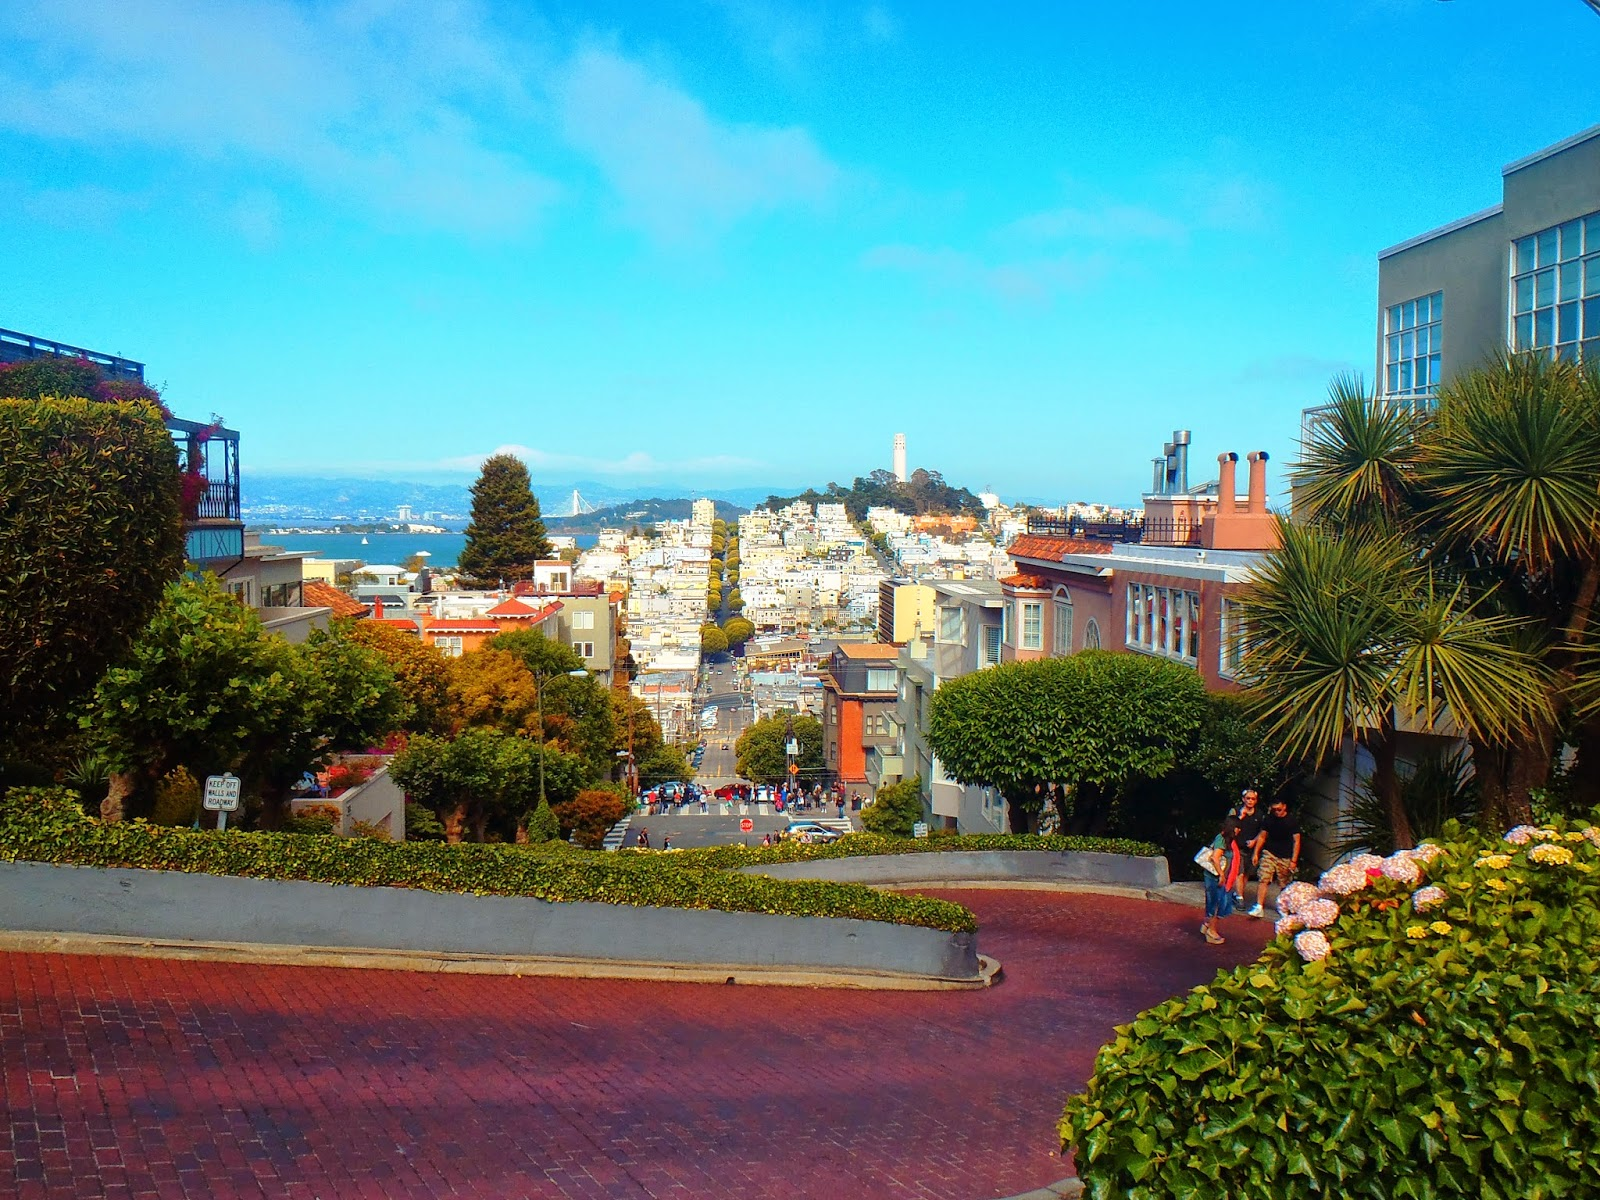 San Francisco's Lombard Street: The Crookedest Street in the World